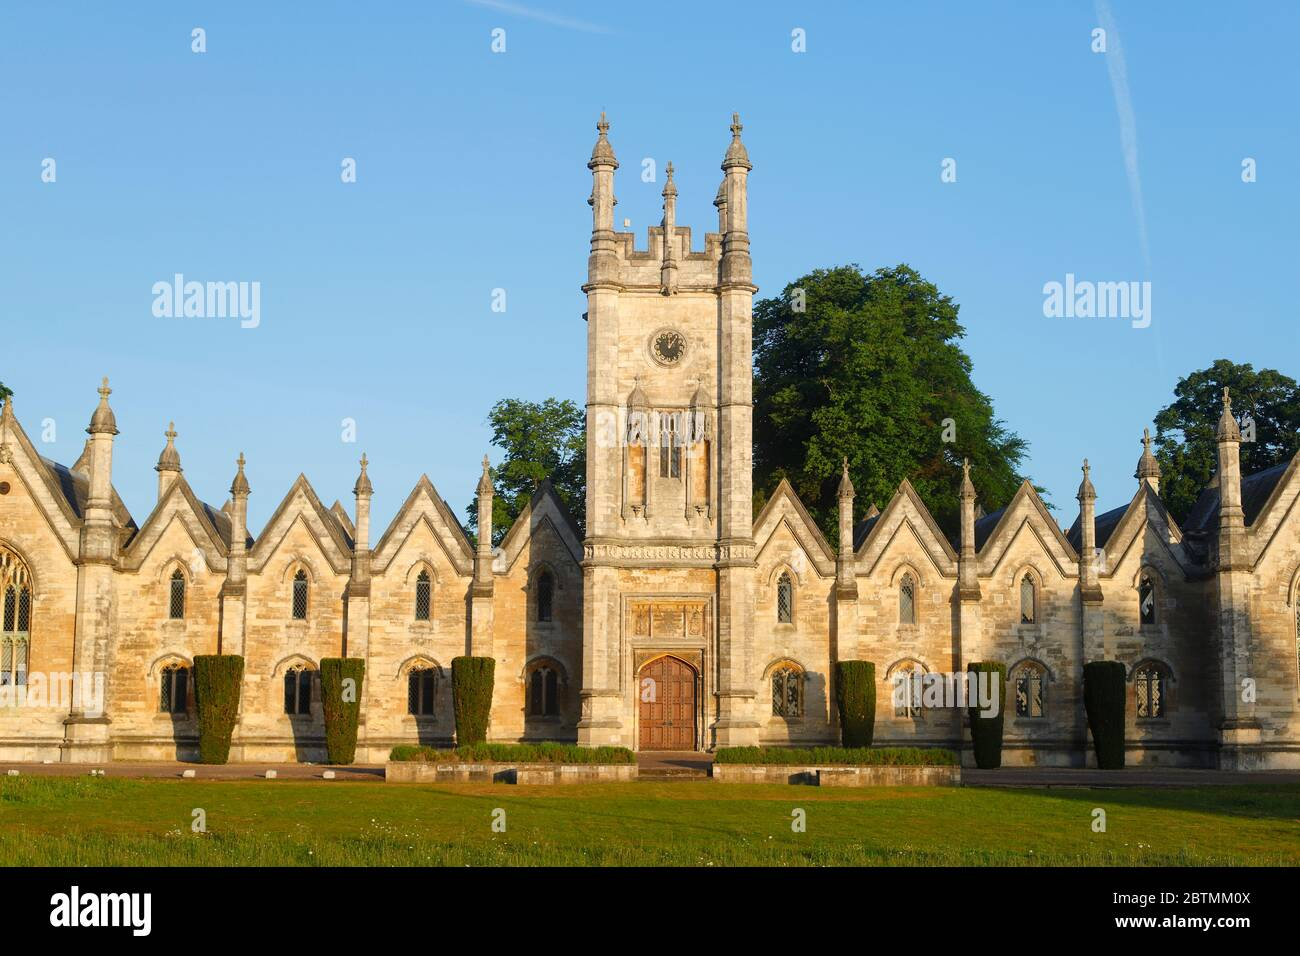 Aberford Almshouses which were built in 1844 by the Gasgoigne family, were more recently converted to offices Stock Photo